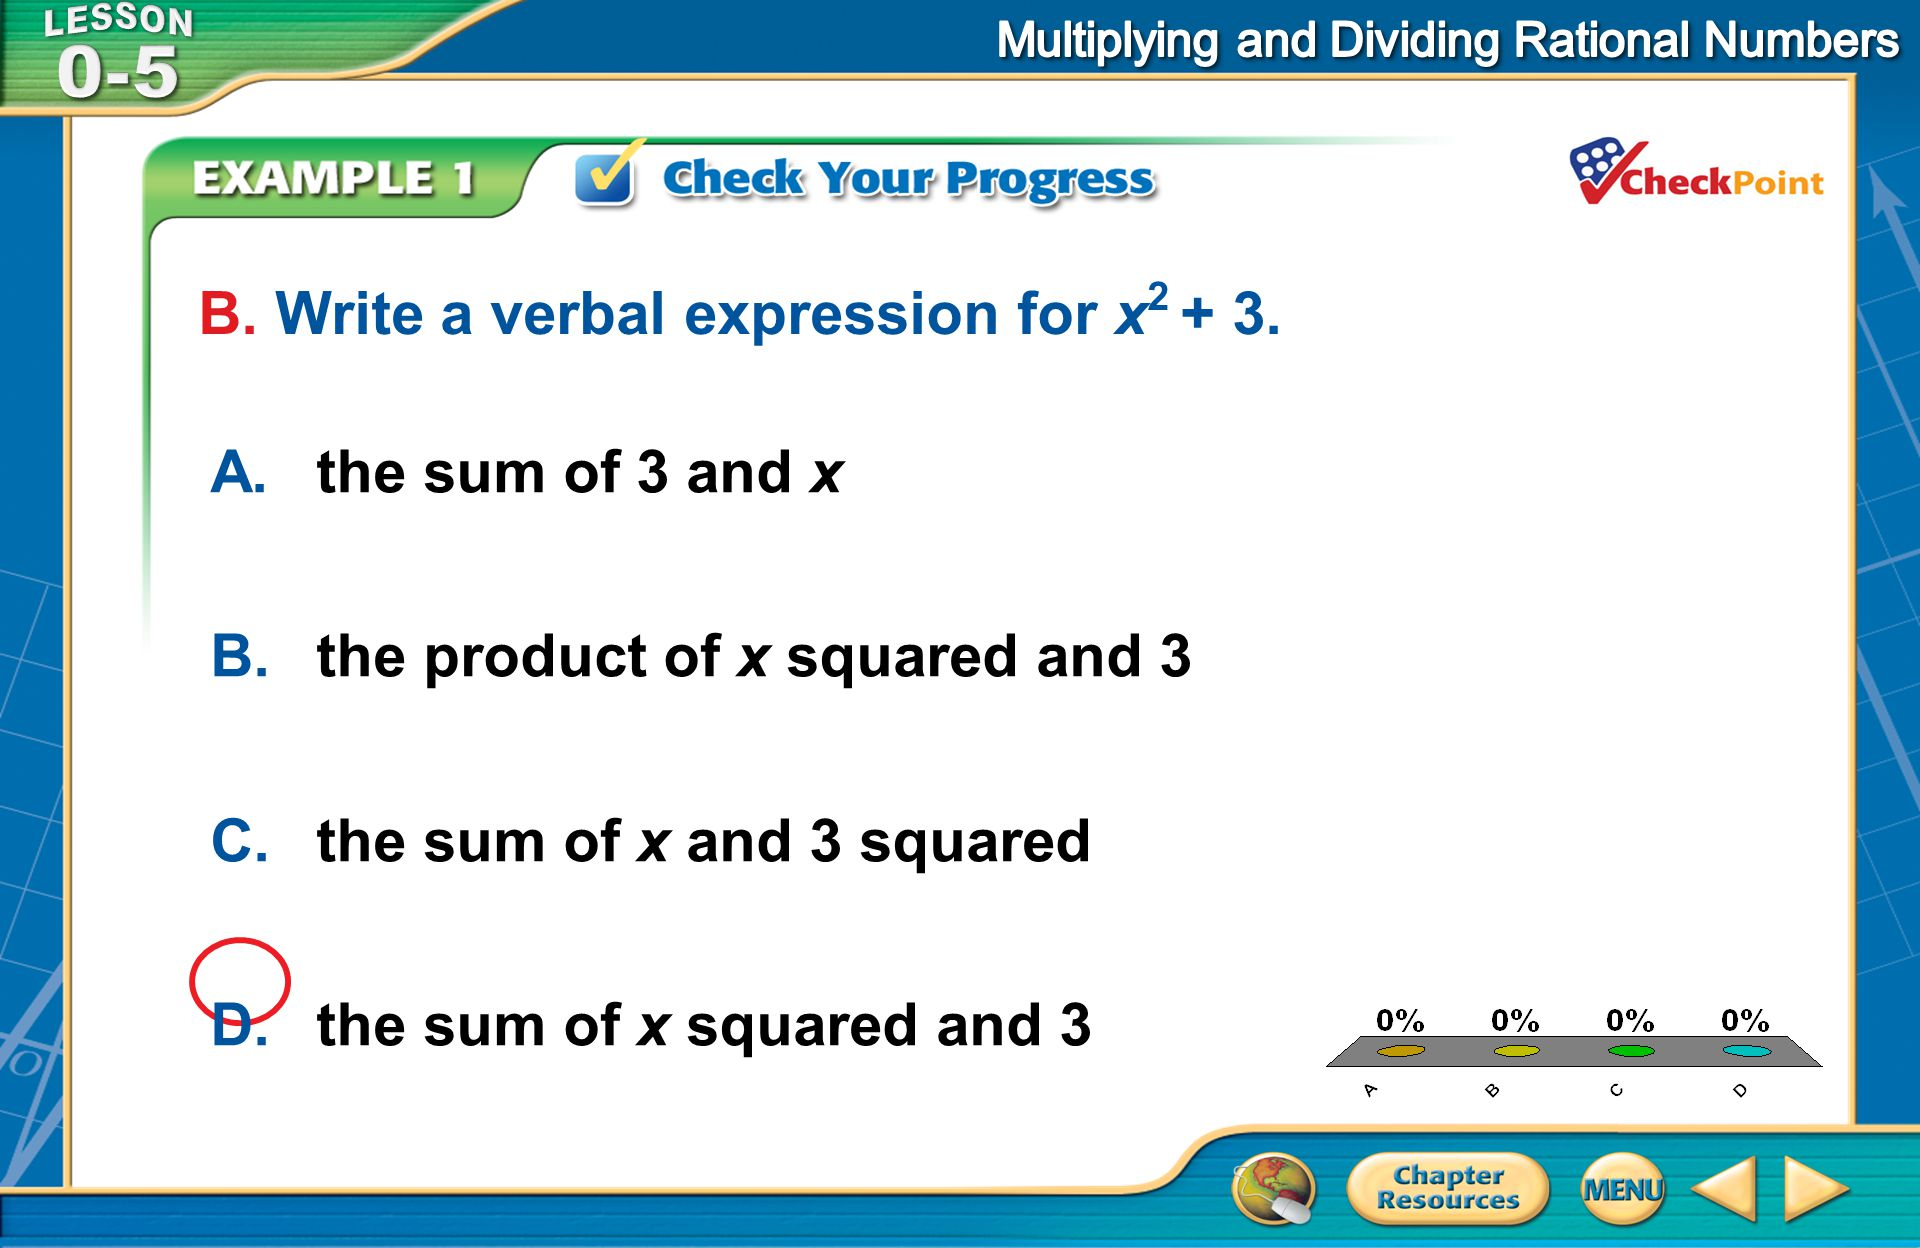 A B C D B. Write a verbal expression for x2 + 3. A. the sum of 3 and x